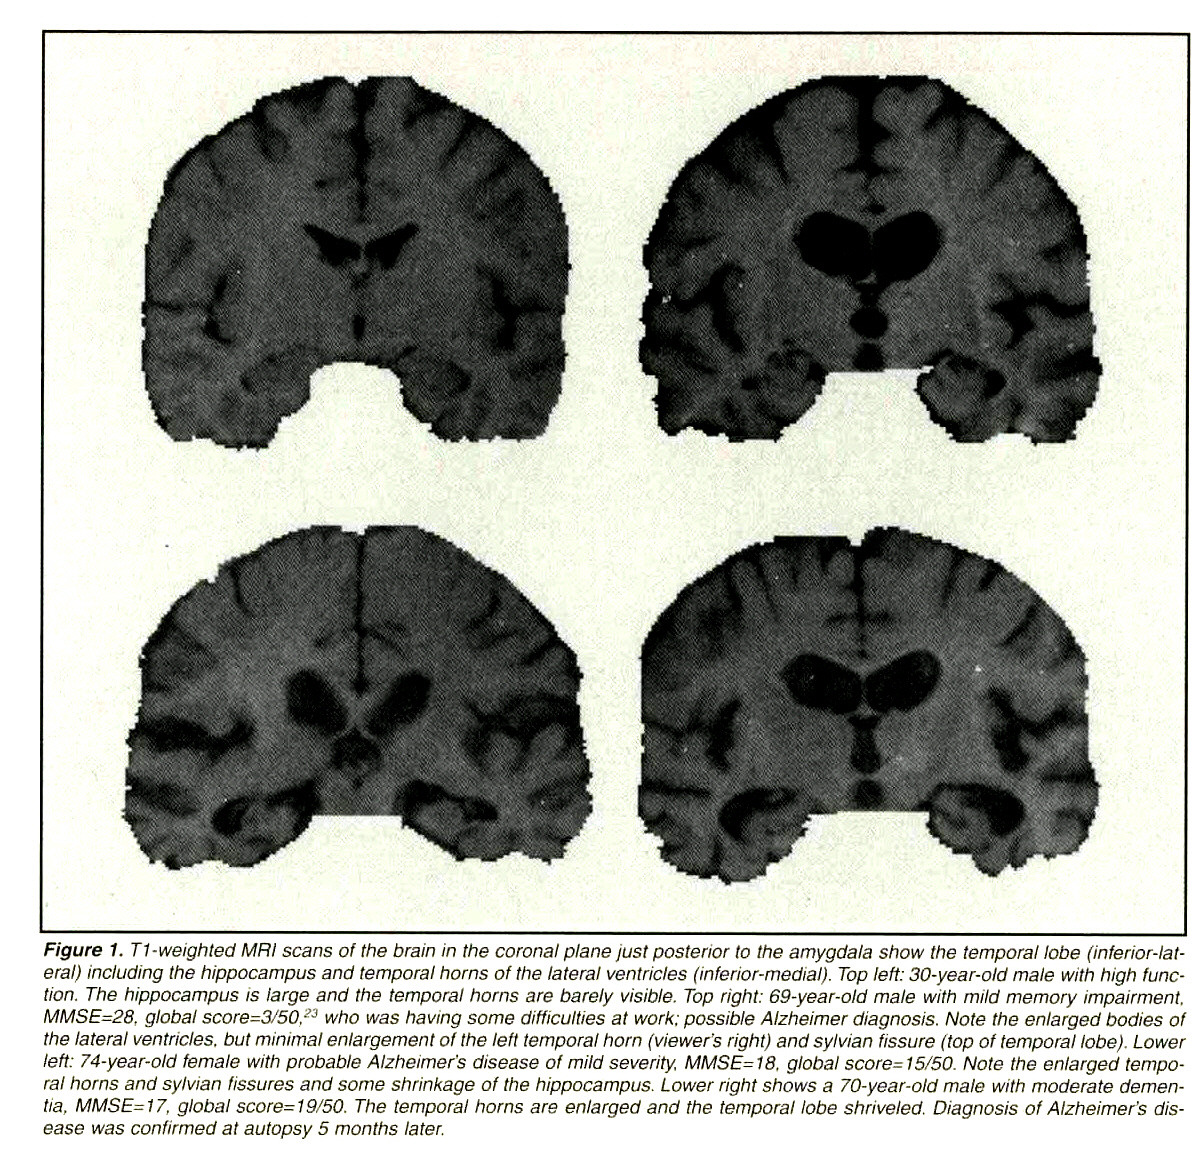 Figure 1. T1 -weighted MRi scans ol the brain in the coronal piane iusi posterior to !he amygdala show the temporal lobe (inferior-lateral) including the hippocampus and temporal horns of trie lateral ventricles (inferior-medial). Top teff: 30-year-old male with high function. The hippocampus is large and the temporal horns are barely visible. Top right: 69-year-old male with mild memory impairment. MMSE=28. global score =3/50. ->y who was having some difficulties at work: possible Aizheimer diagnosis. Note the enlarged bodies of the lateral ventricles, but minimal enlargement of the left temporal horn (viewer's right) and sylvian fissure (top of temporal lobe). Lower leti: 74-year-old female with probable Alzheimer's disease of mild severity. MMSE= 70, global score= 15/50. Note the enlarged temporal horns and sylvian fissures and some shrinkage of the hippocampus. Lower right shows a 70-year-old male with moderate dementia. MMSE=17. global score=T9/50. The temporal horns are enlarged and the temporal lobe shriveled. Diagnosis of Alzheimer's disease was confirmed a! autopsy 5 months later.